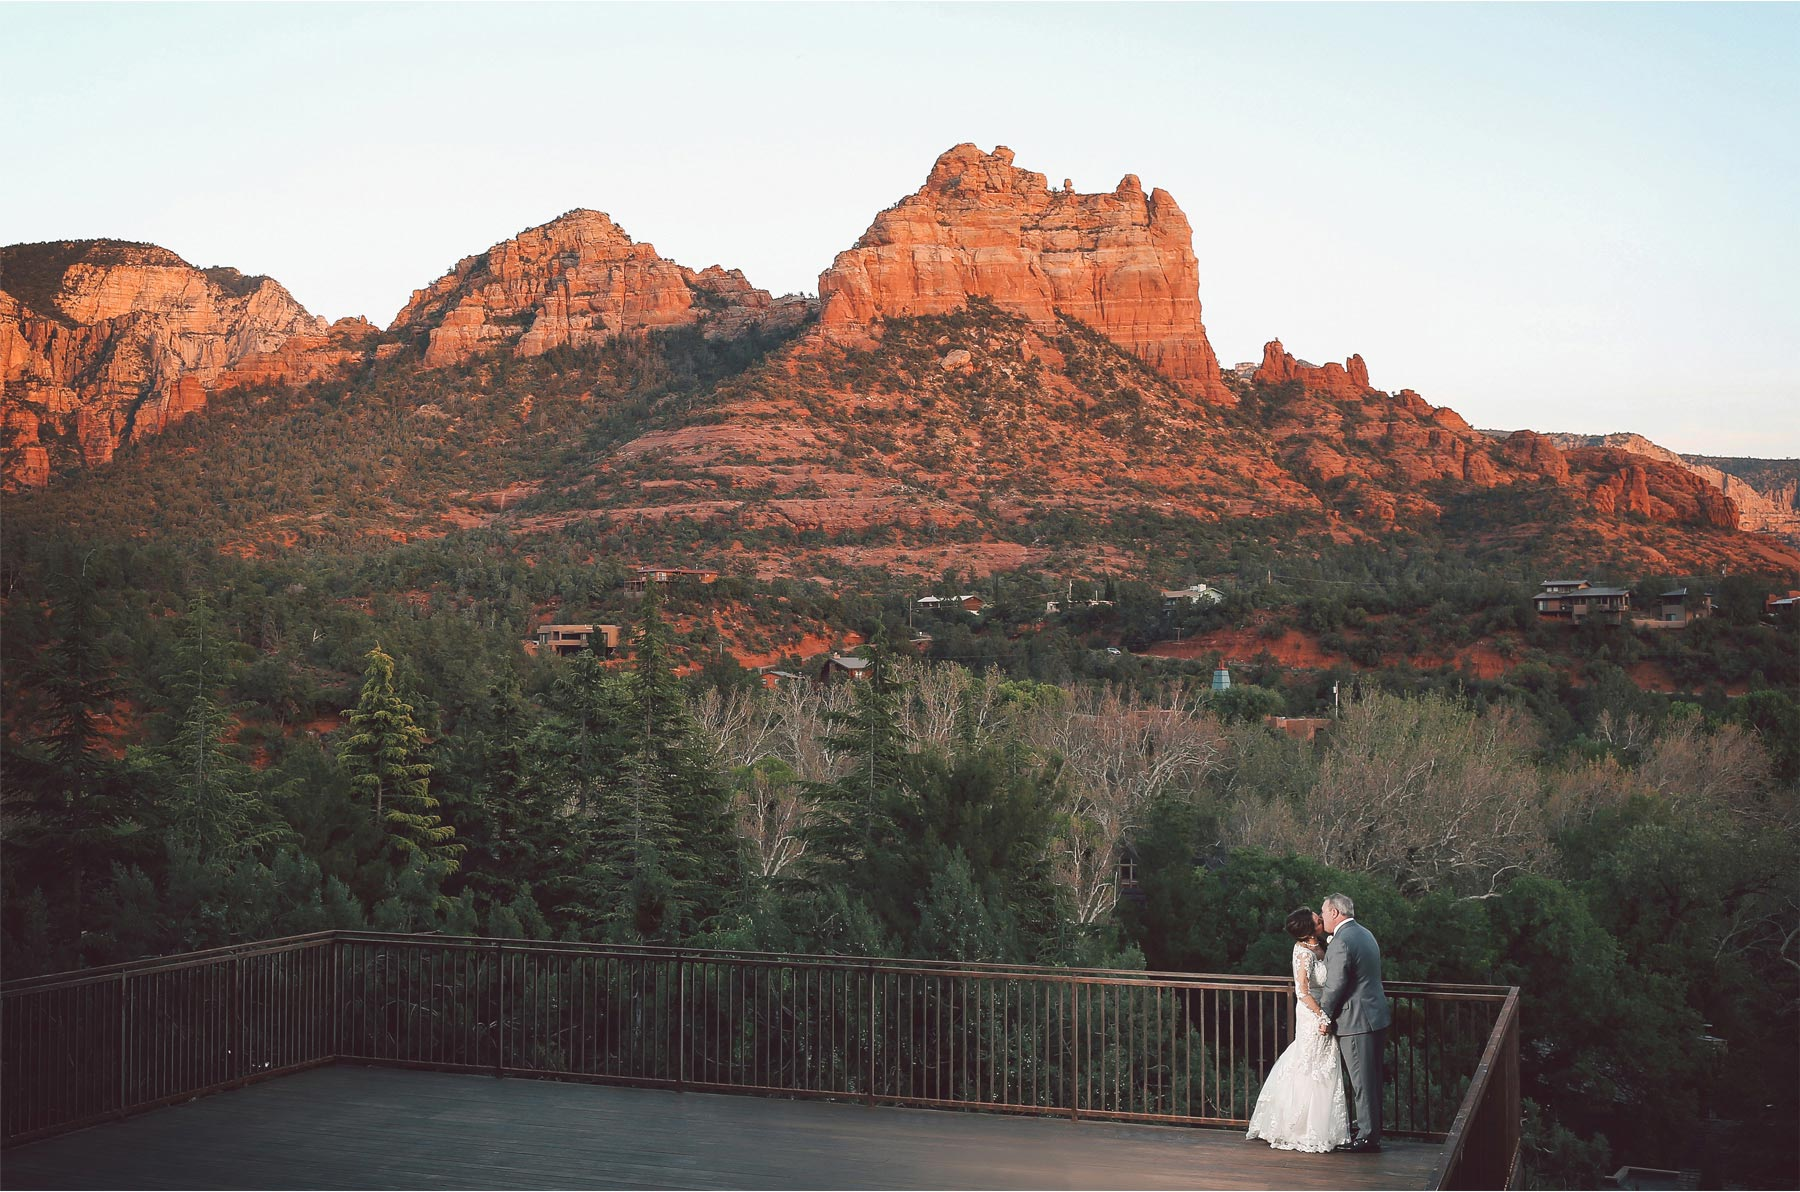 24-Sedona-Arizona-Wedding-Photographer-by-Andrew-Vick-Photography-Spring--LAuberge-de-Sedona-Resort-Reception-Garden-Lawn-Bride-Groom-Deck-Mountains-Kiss-Vintage-Barbara-and-Mike.jpg